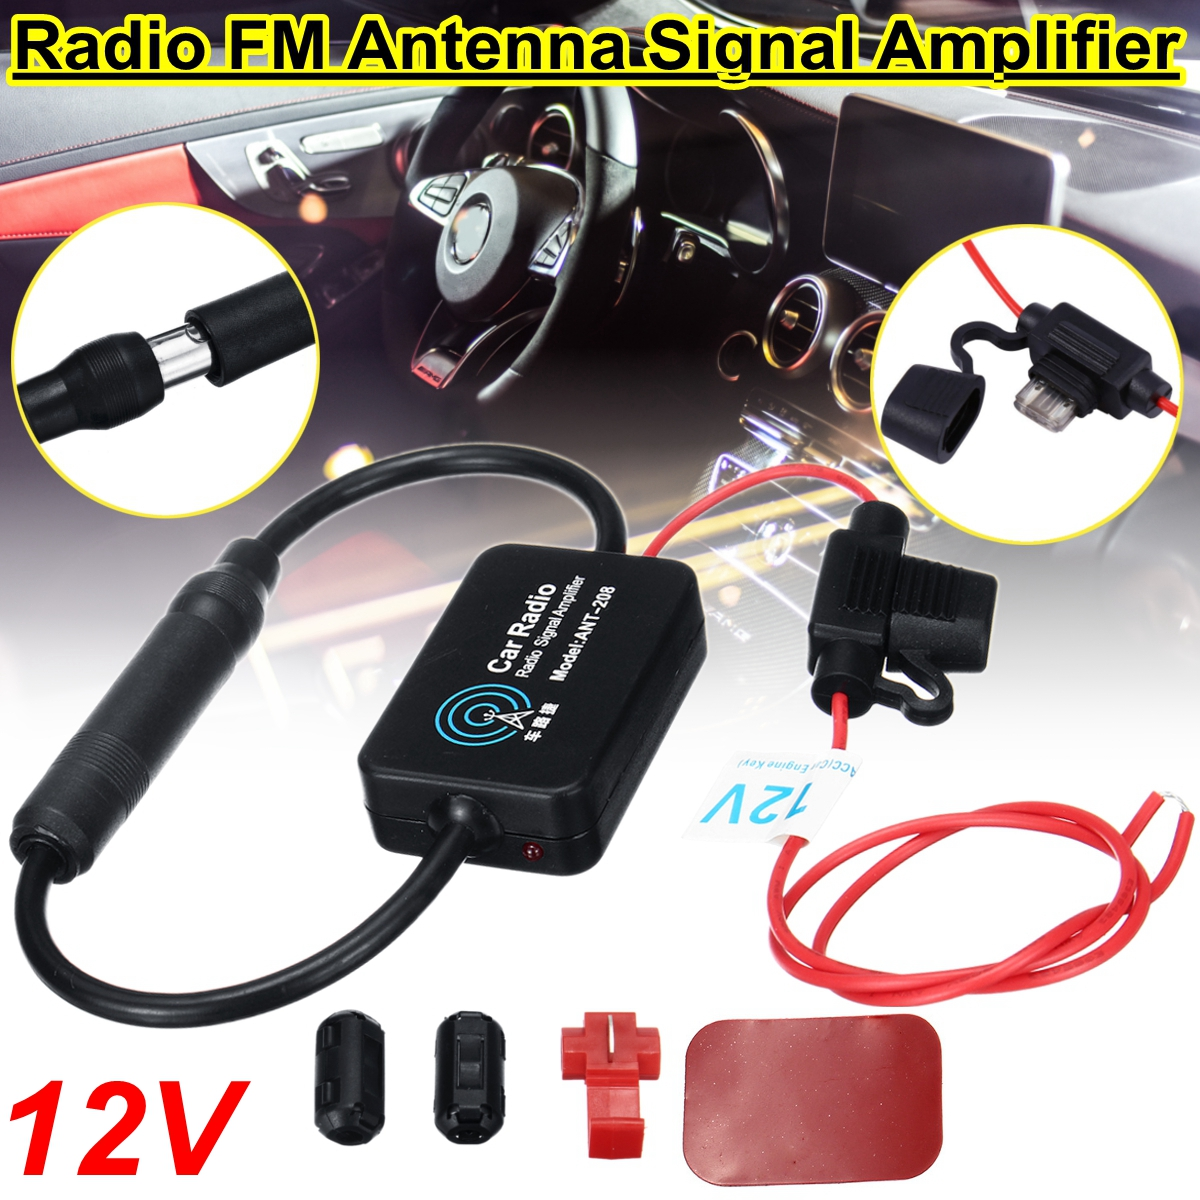 12V Universal Auto Car Radio FM Antenna Signal Amplifier Booster with Clip